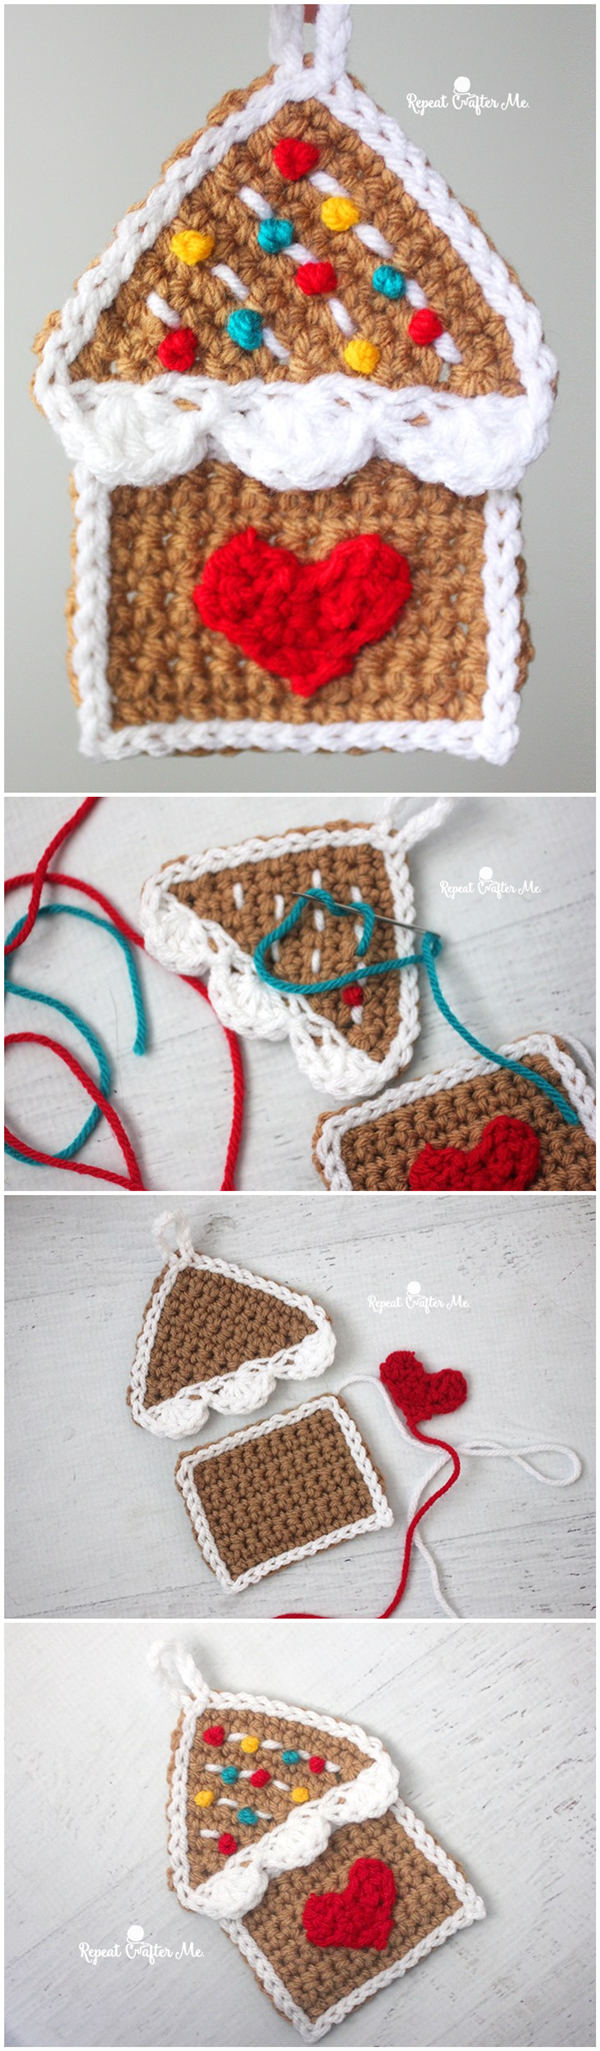 Crochet Gingerbread House Ornament